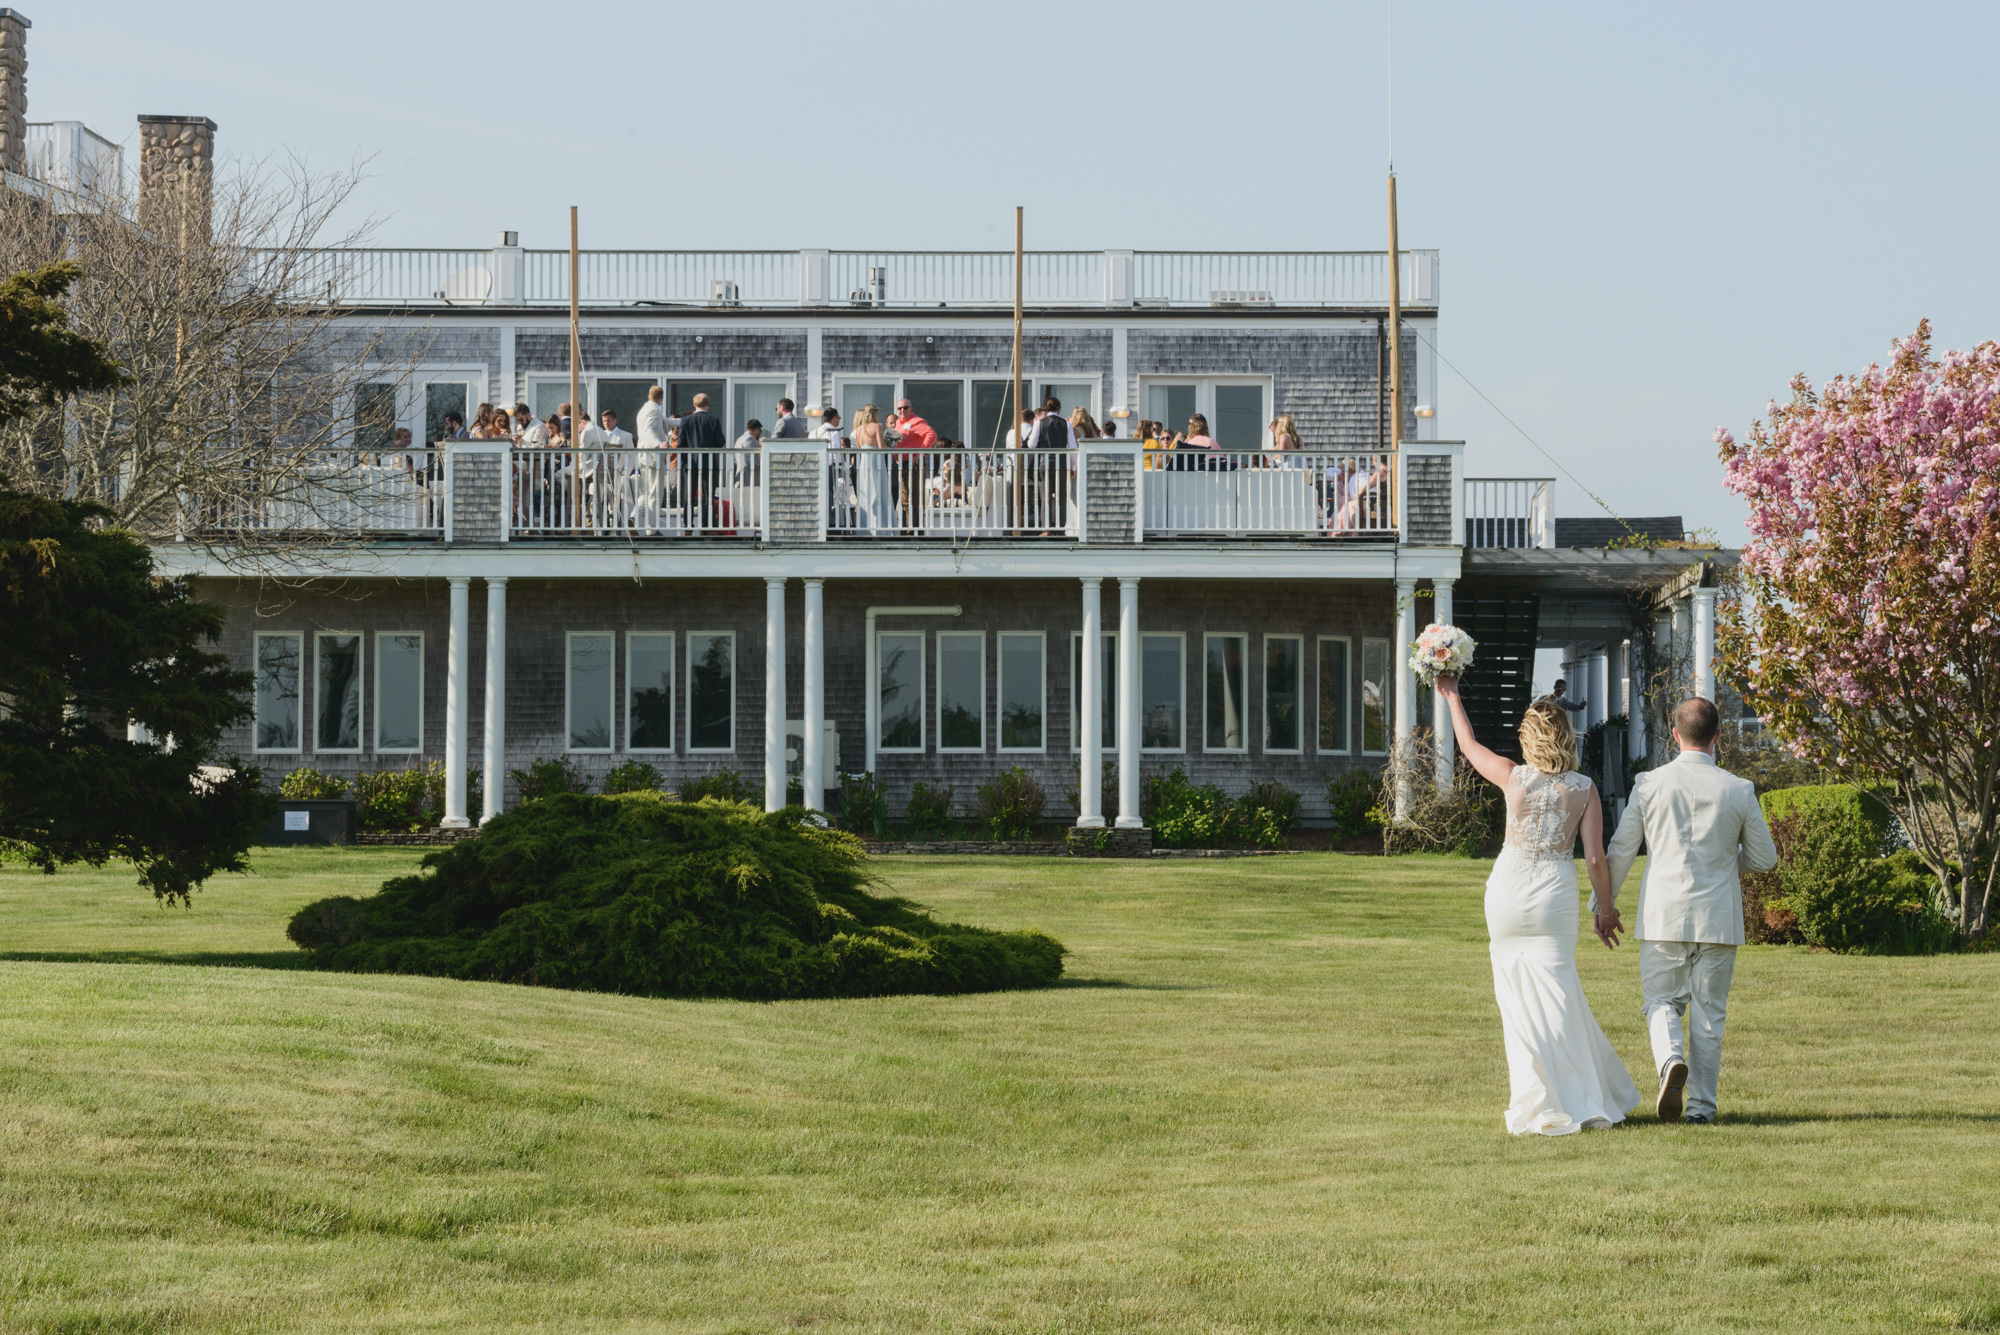 A bride and groom walk towards the Winnetu Oceanside Resort martha's vineyard wedding venues photo by David Welch Photography